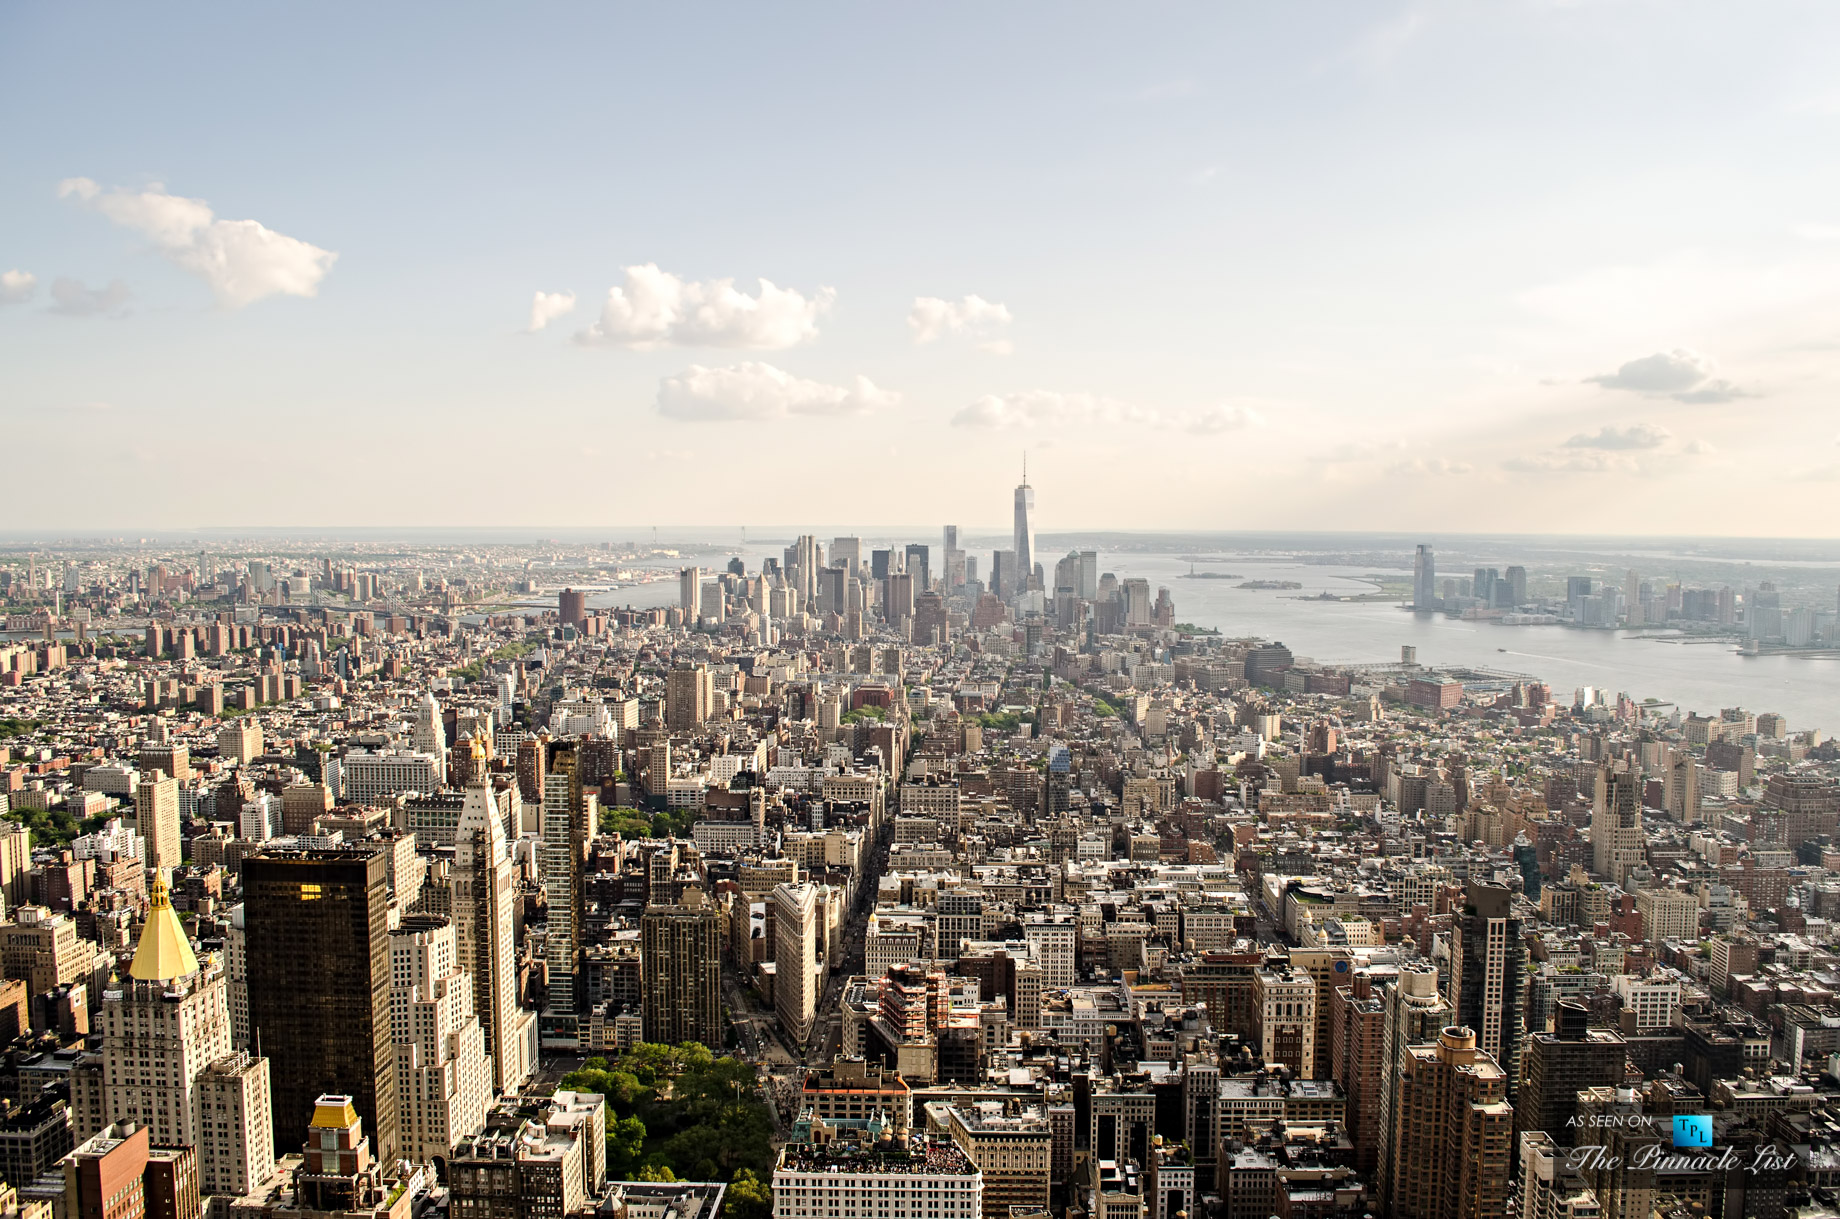 New York, NY - Real Estate in the United States - Top 5 Most Expensive Regions to Live in America